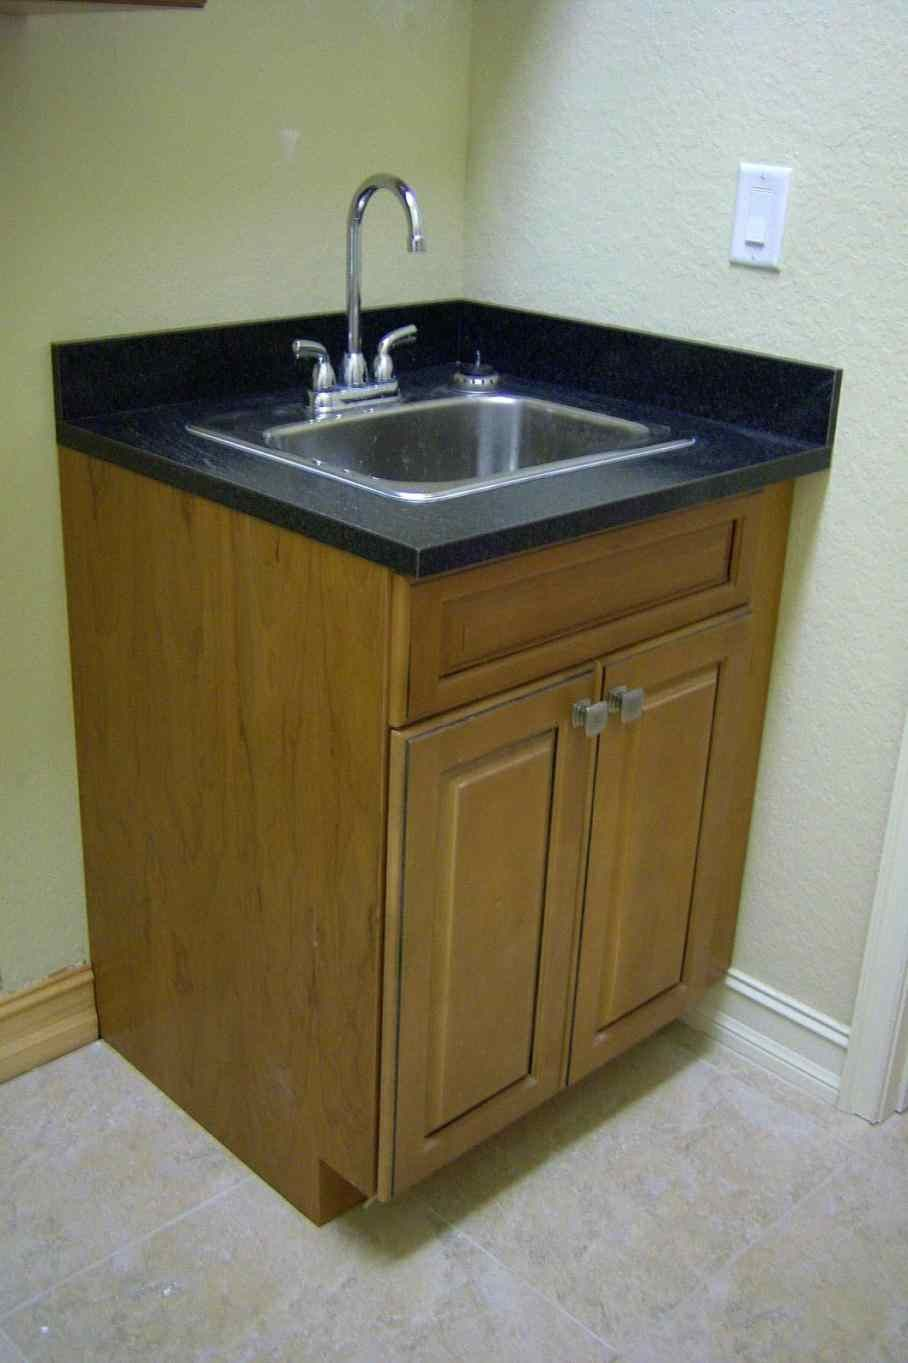 Kitchen Sink Dimensions In 2020 Small Kitchen Sink Small Kitchen Cabinets Kitchen Base Cabinets